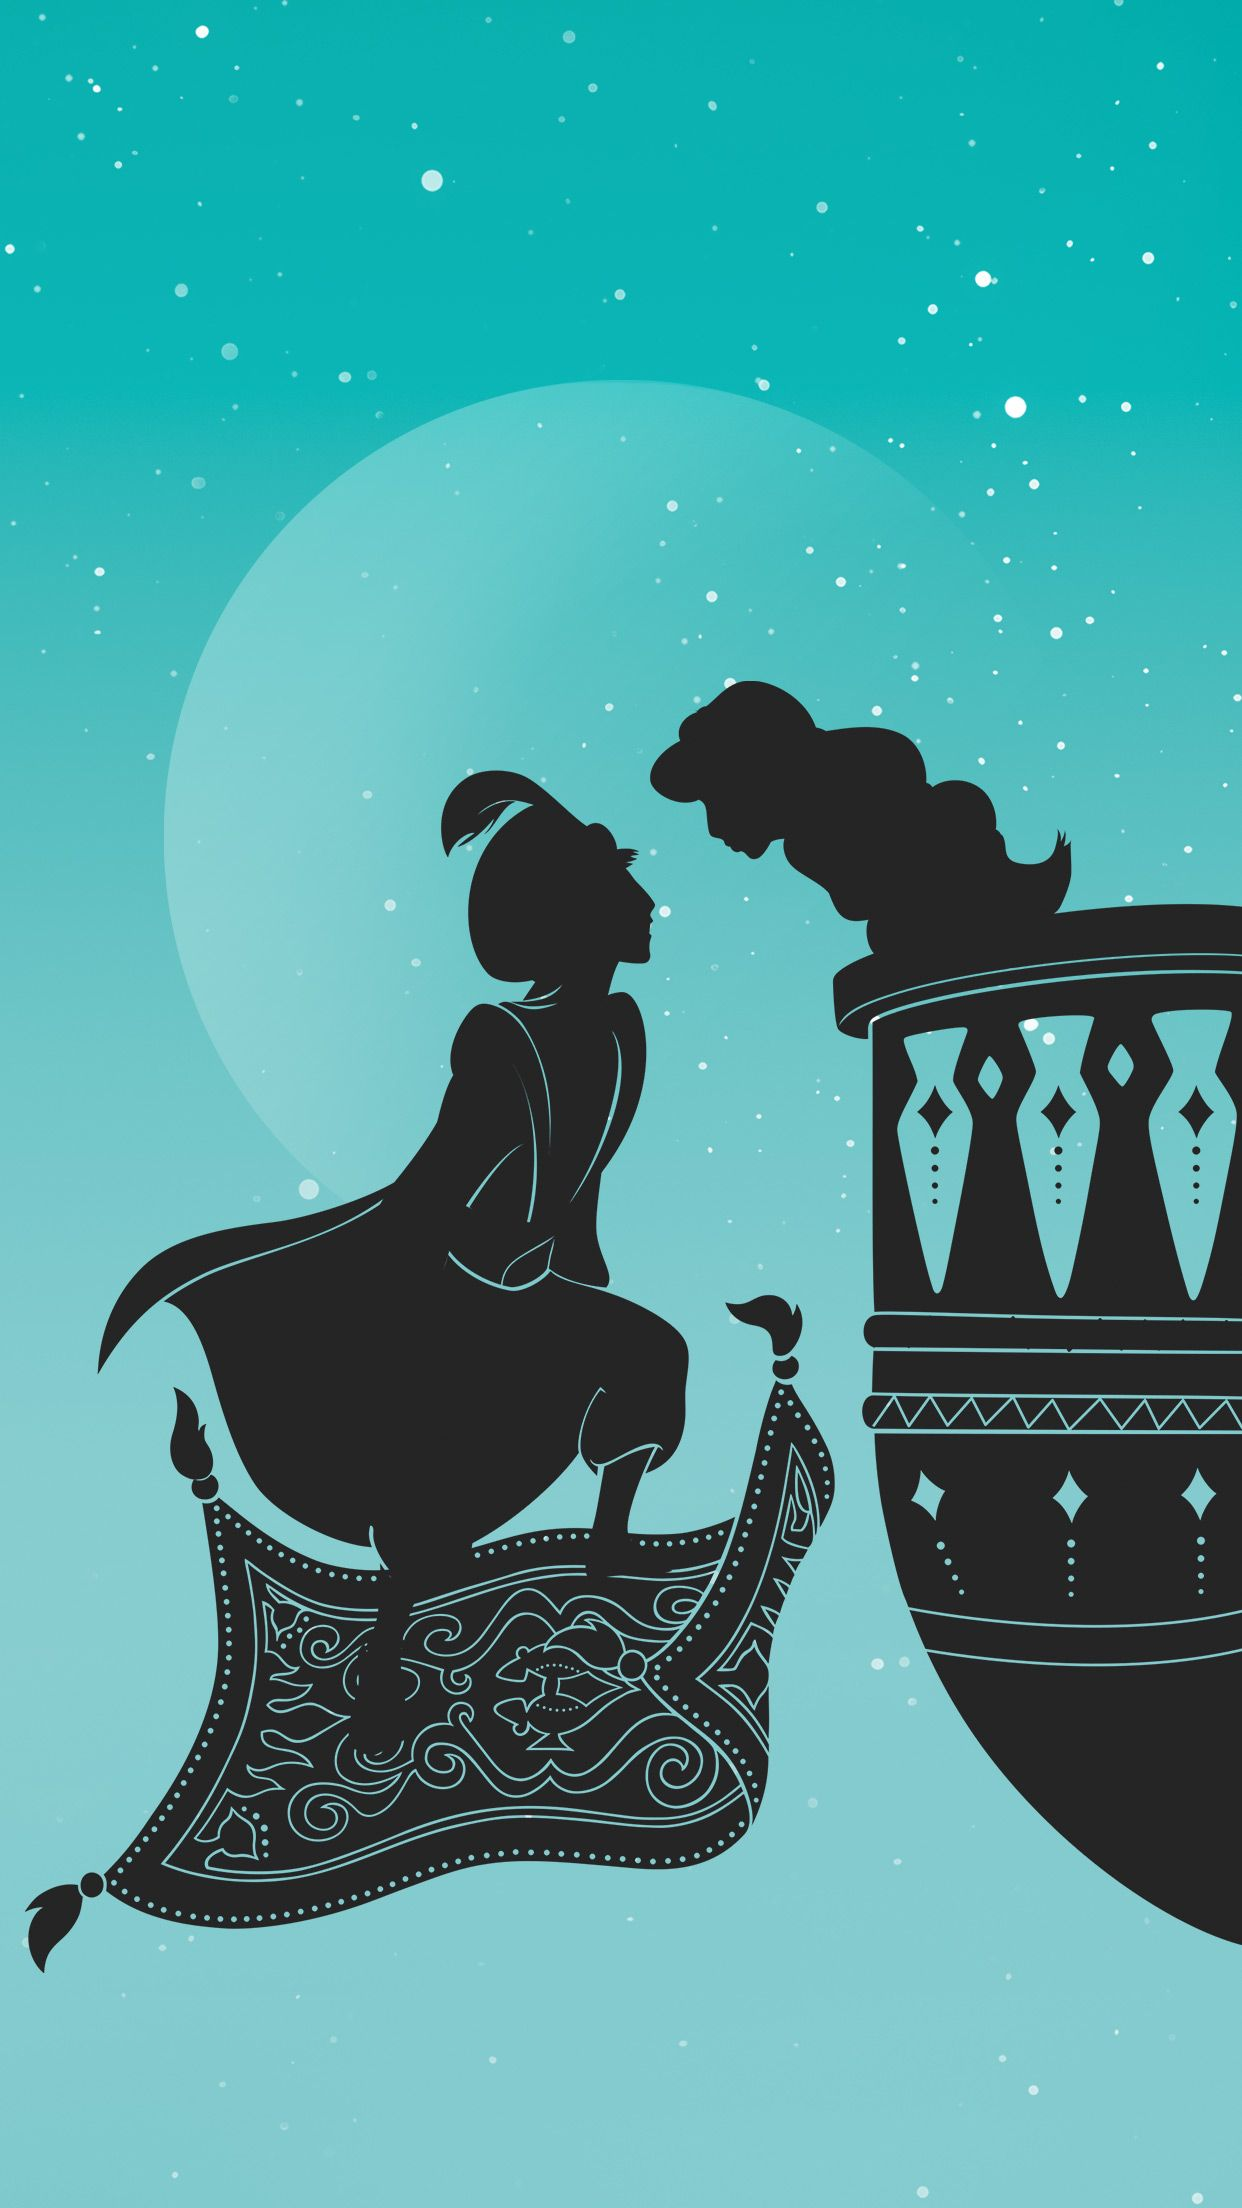 Aladdin Wallpaper Iphone These Papercut Inspired Disney Princess Phone Wallpapers